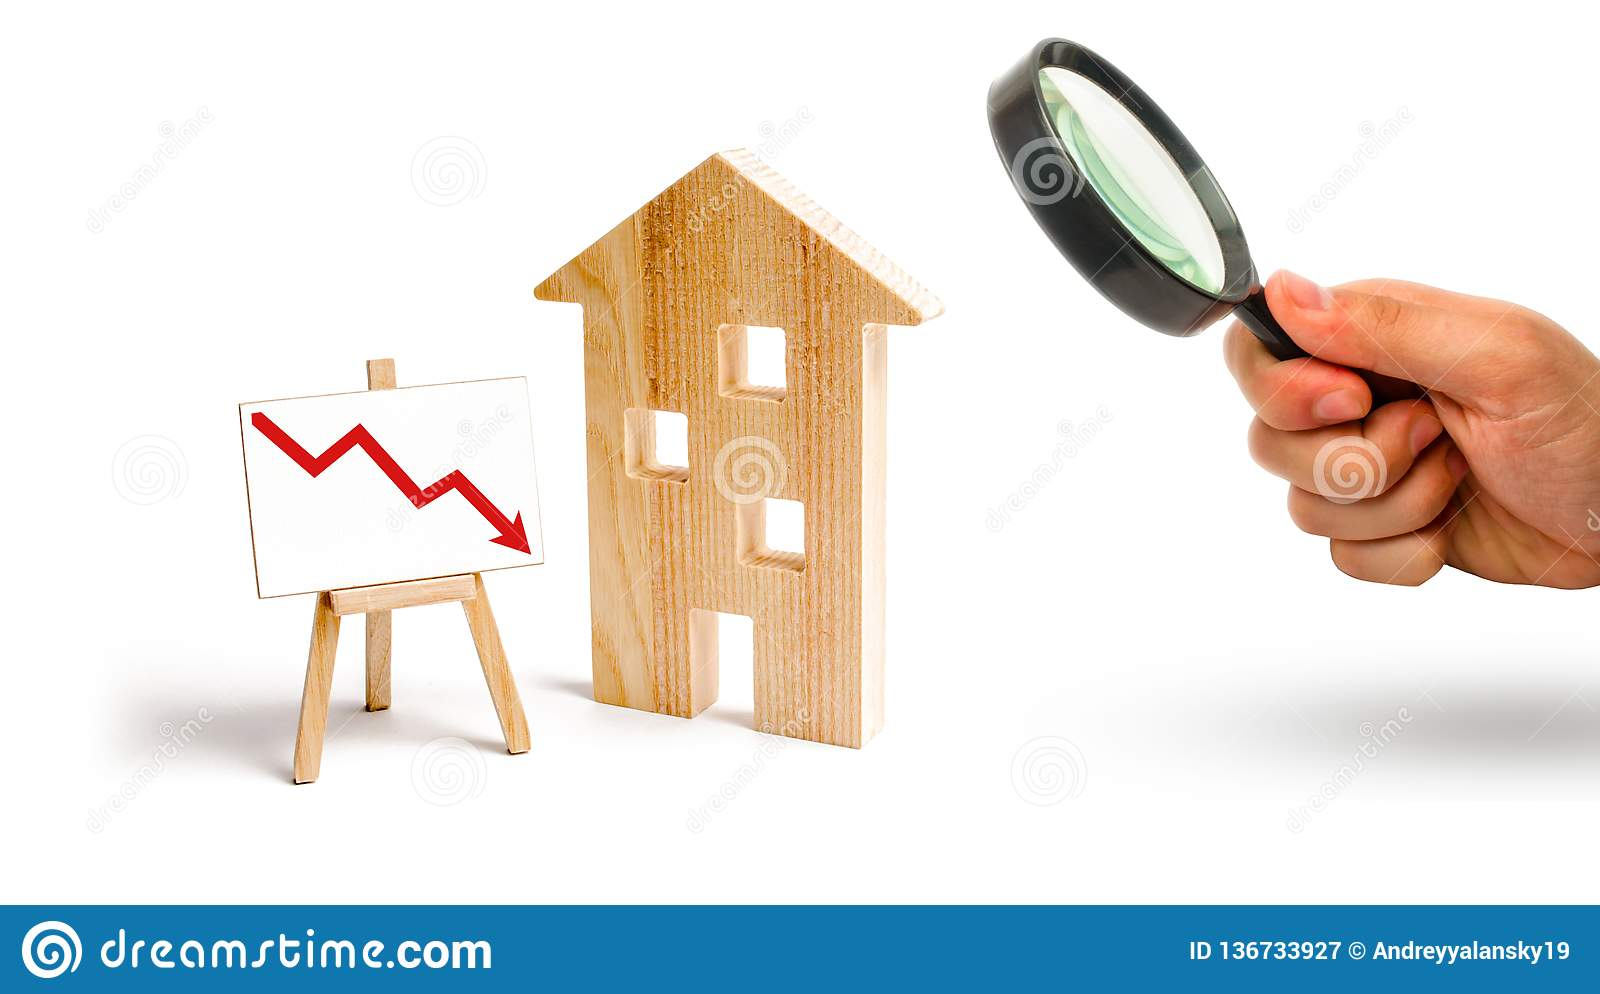 Magnifying glass is looking at the wooden house and red arrow down. concept of falling prices and demand for real estate, the fall